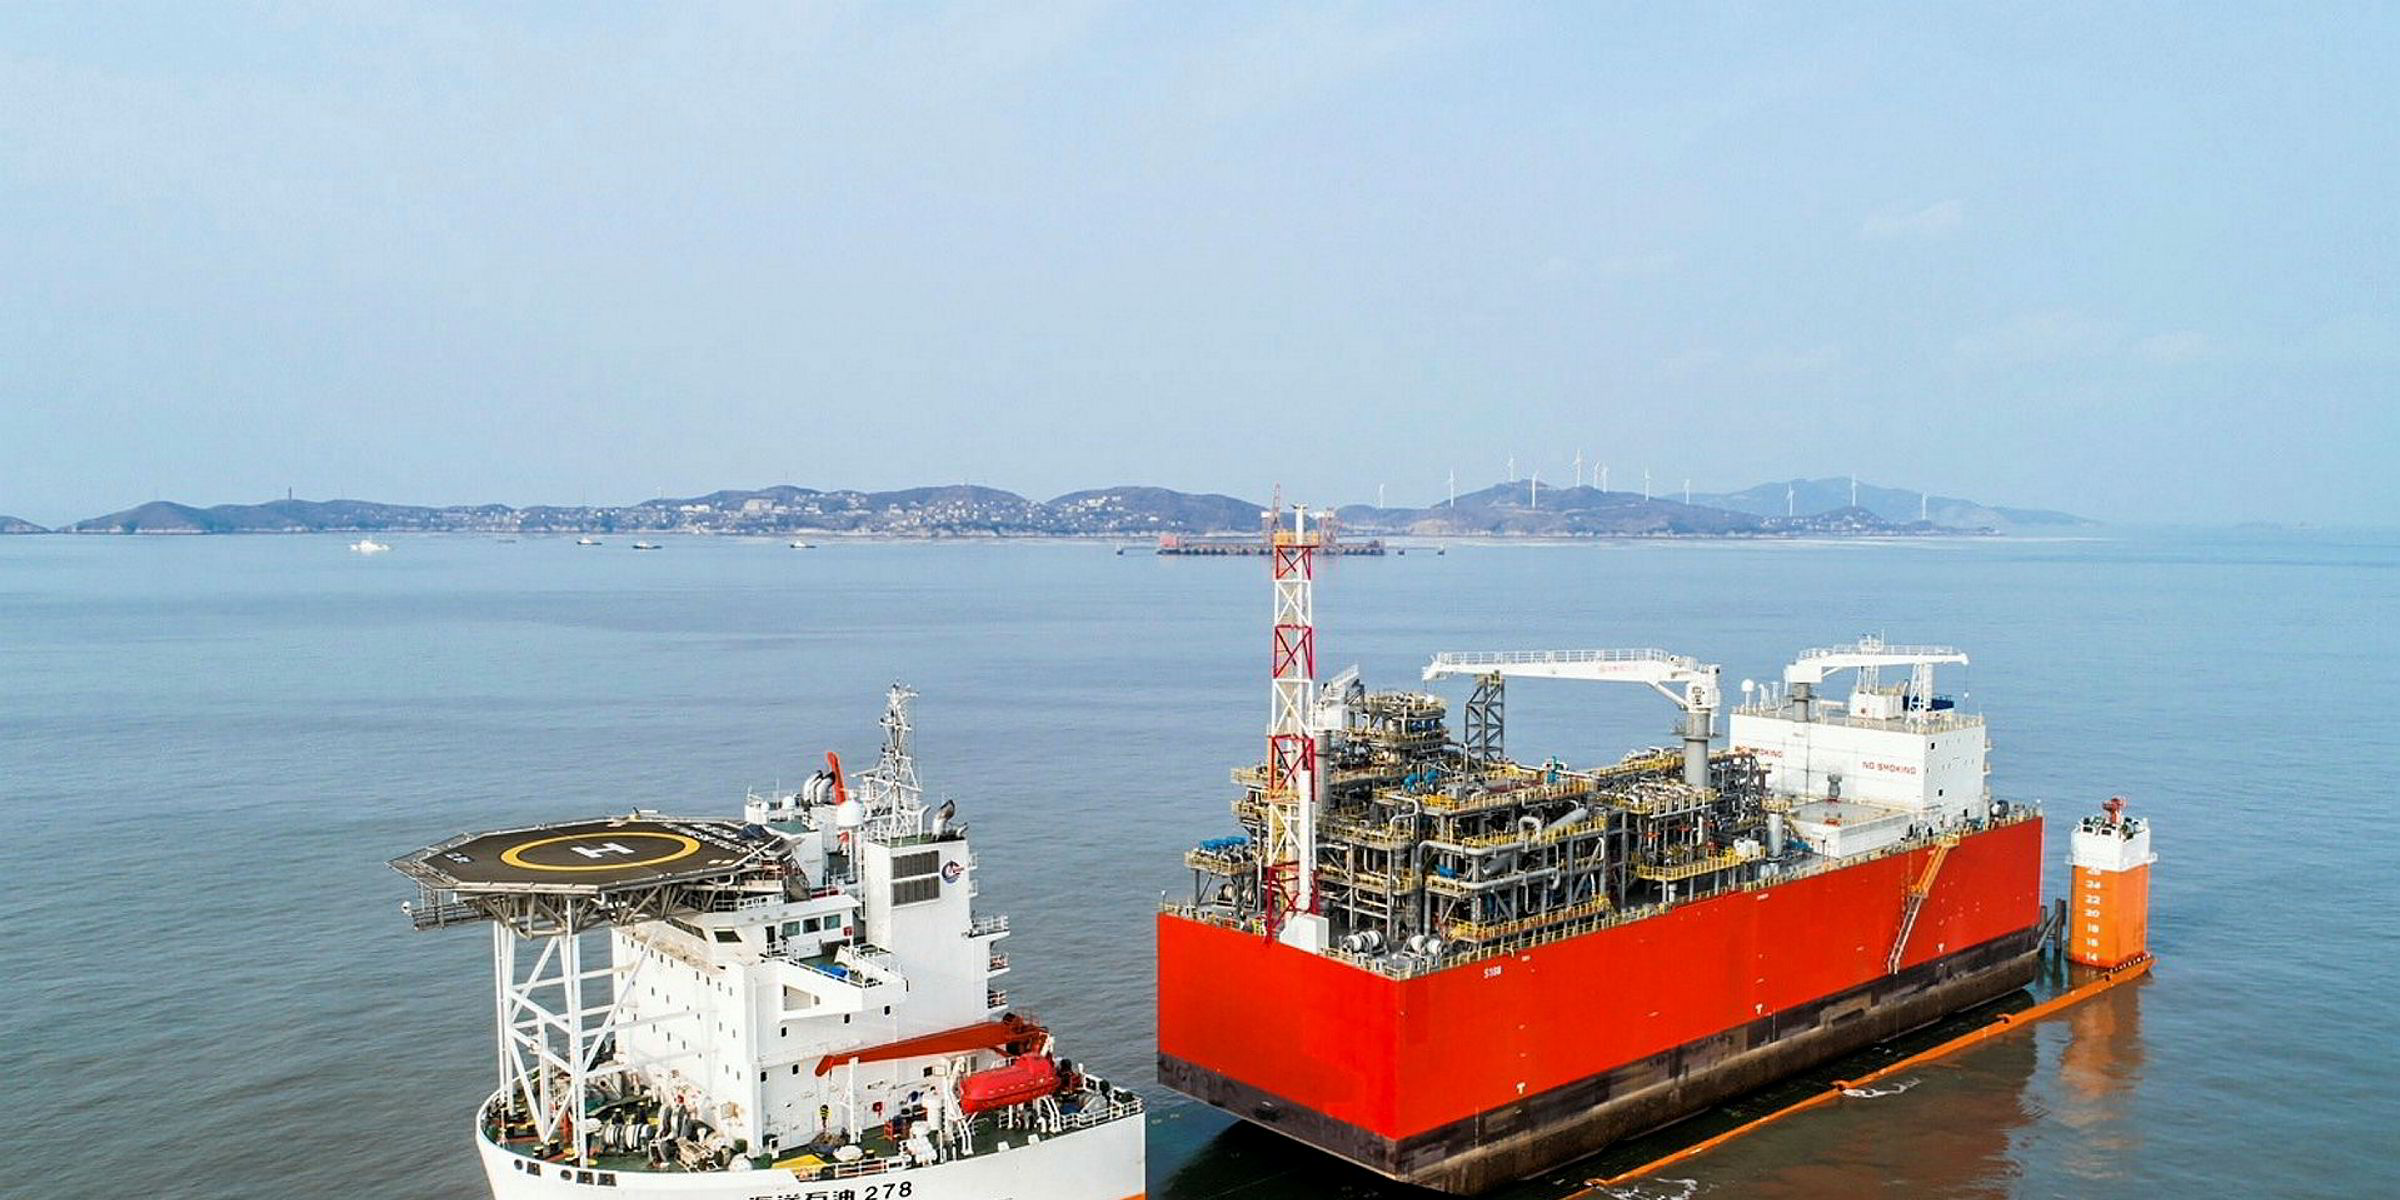 Exmar's barge-based FSRU begins its journey to Bangladesh